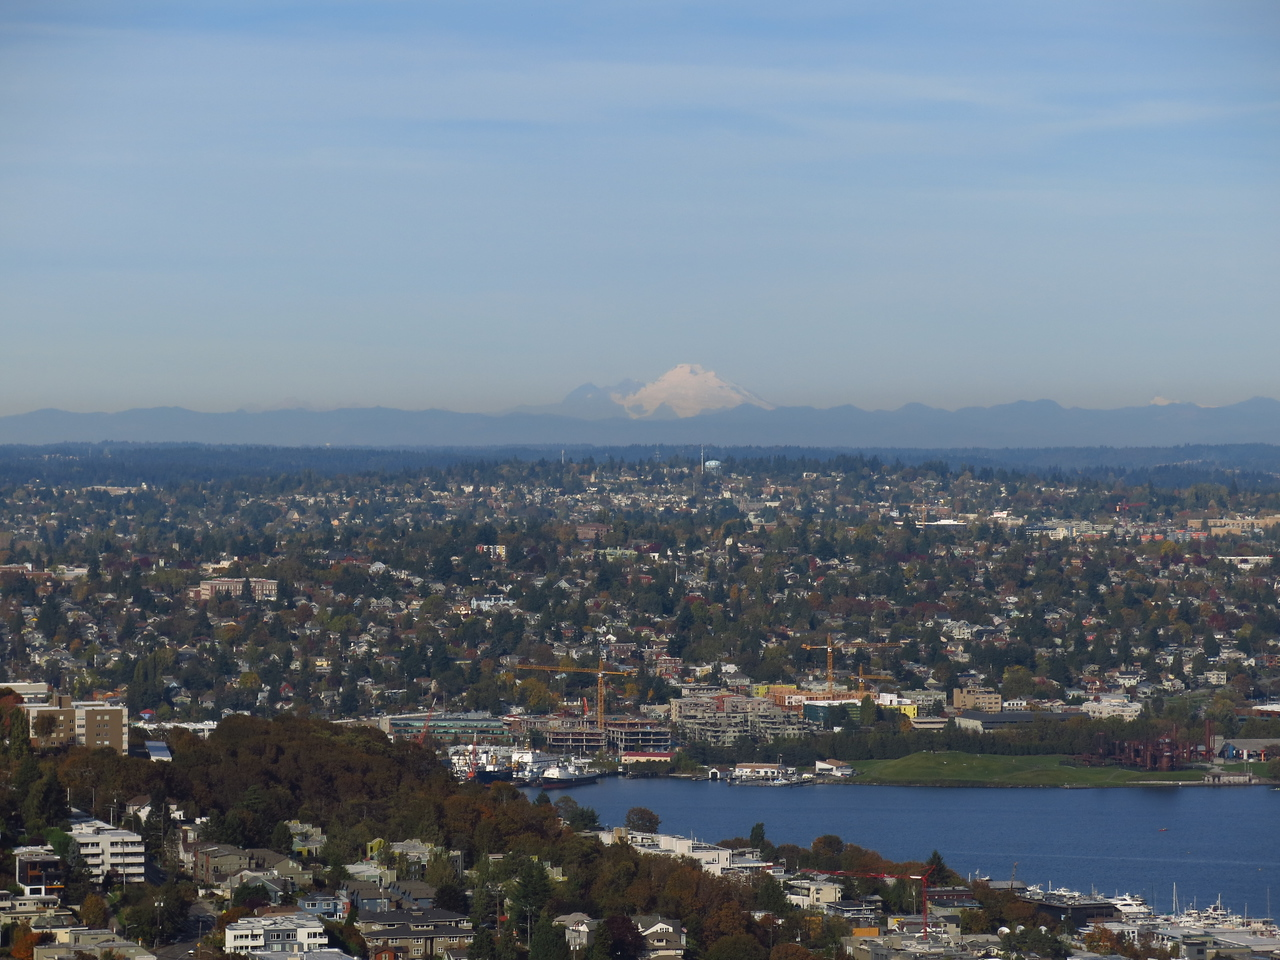 Looking North:  Lake Union in the foreground and Mount Baker in the distance